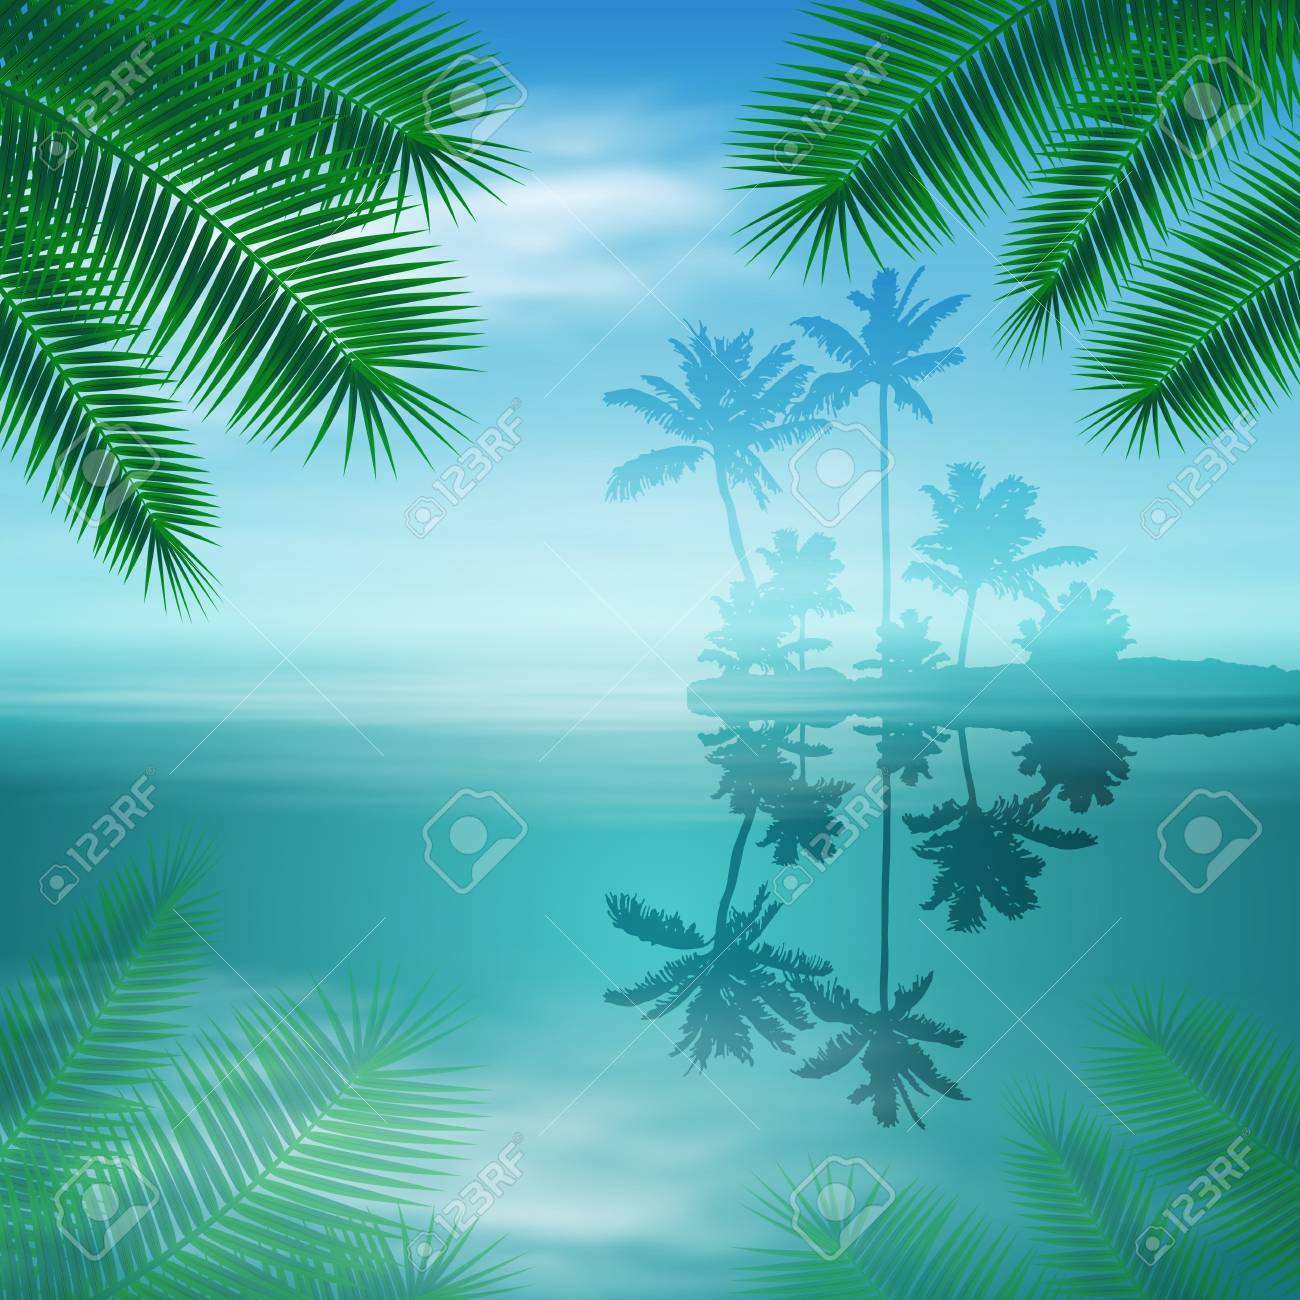 Sea with island and palm trees. - 40569495